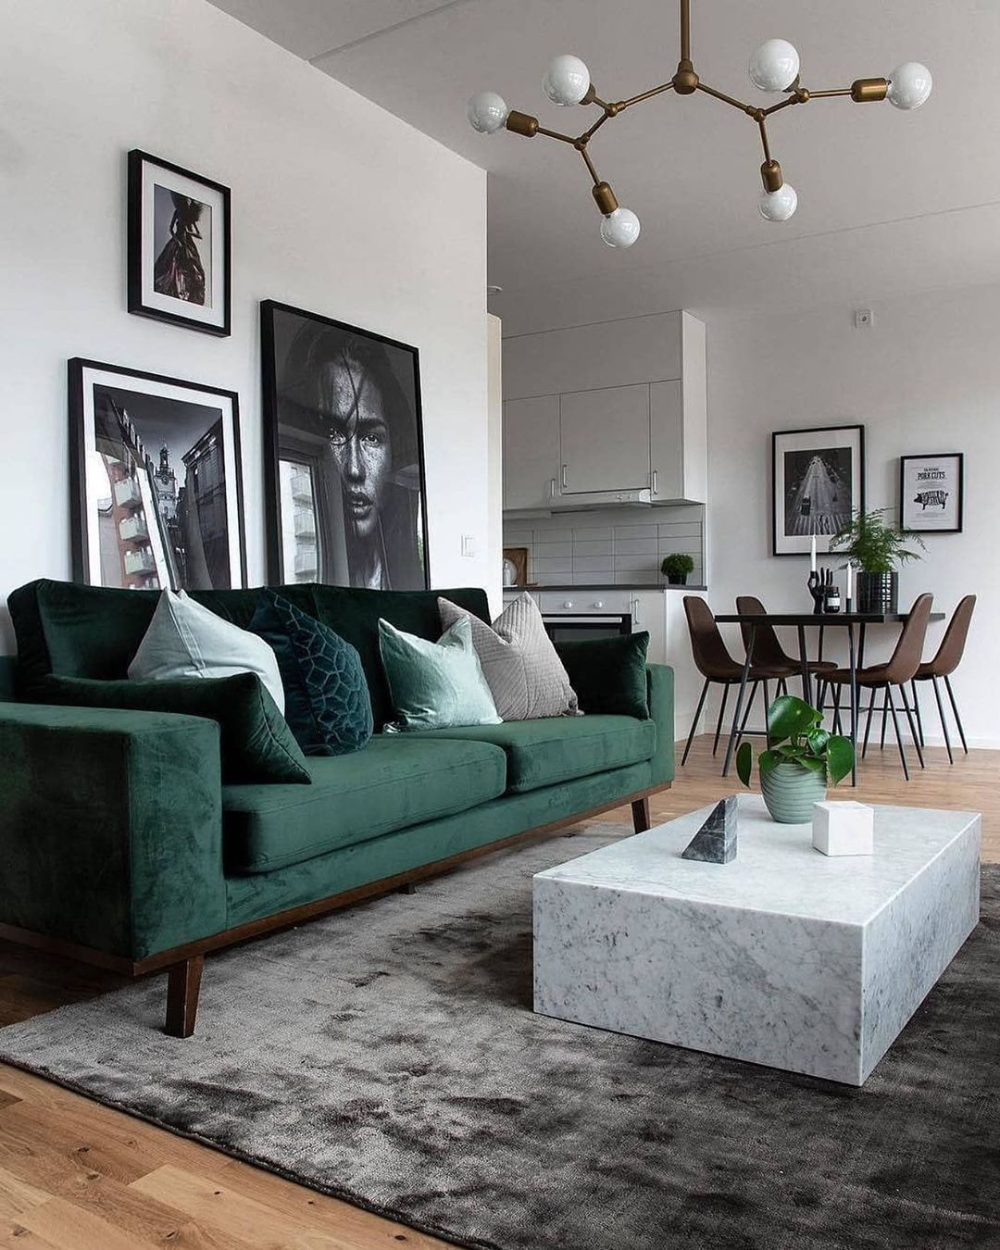 Great Ideas for Beginners in Living Room Decoration 2019 - Page 28 of 39 - My Blog